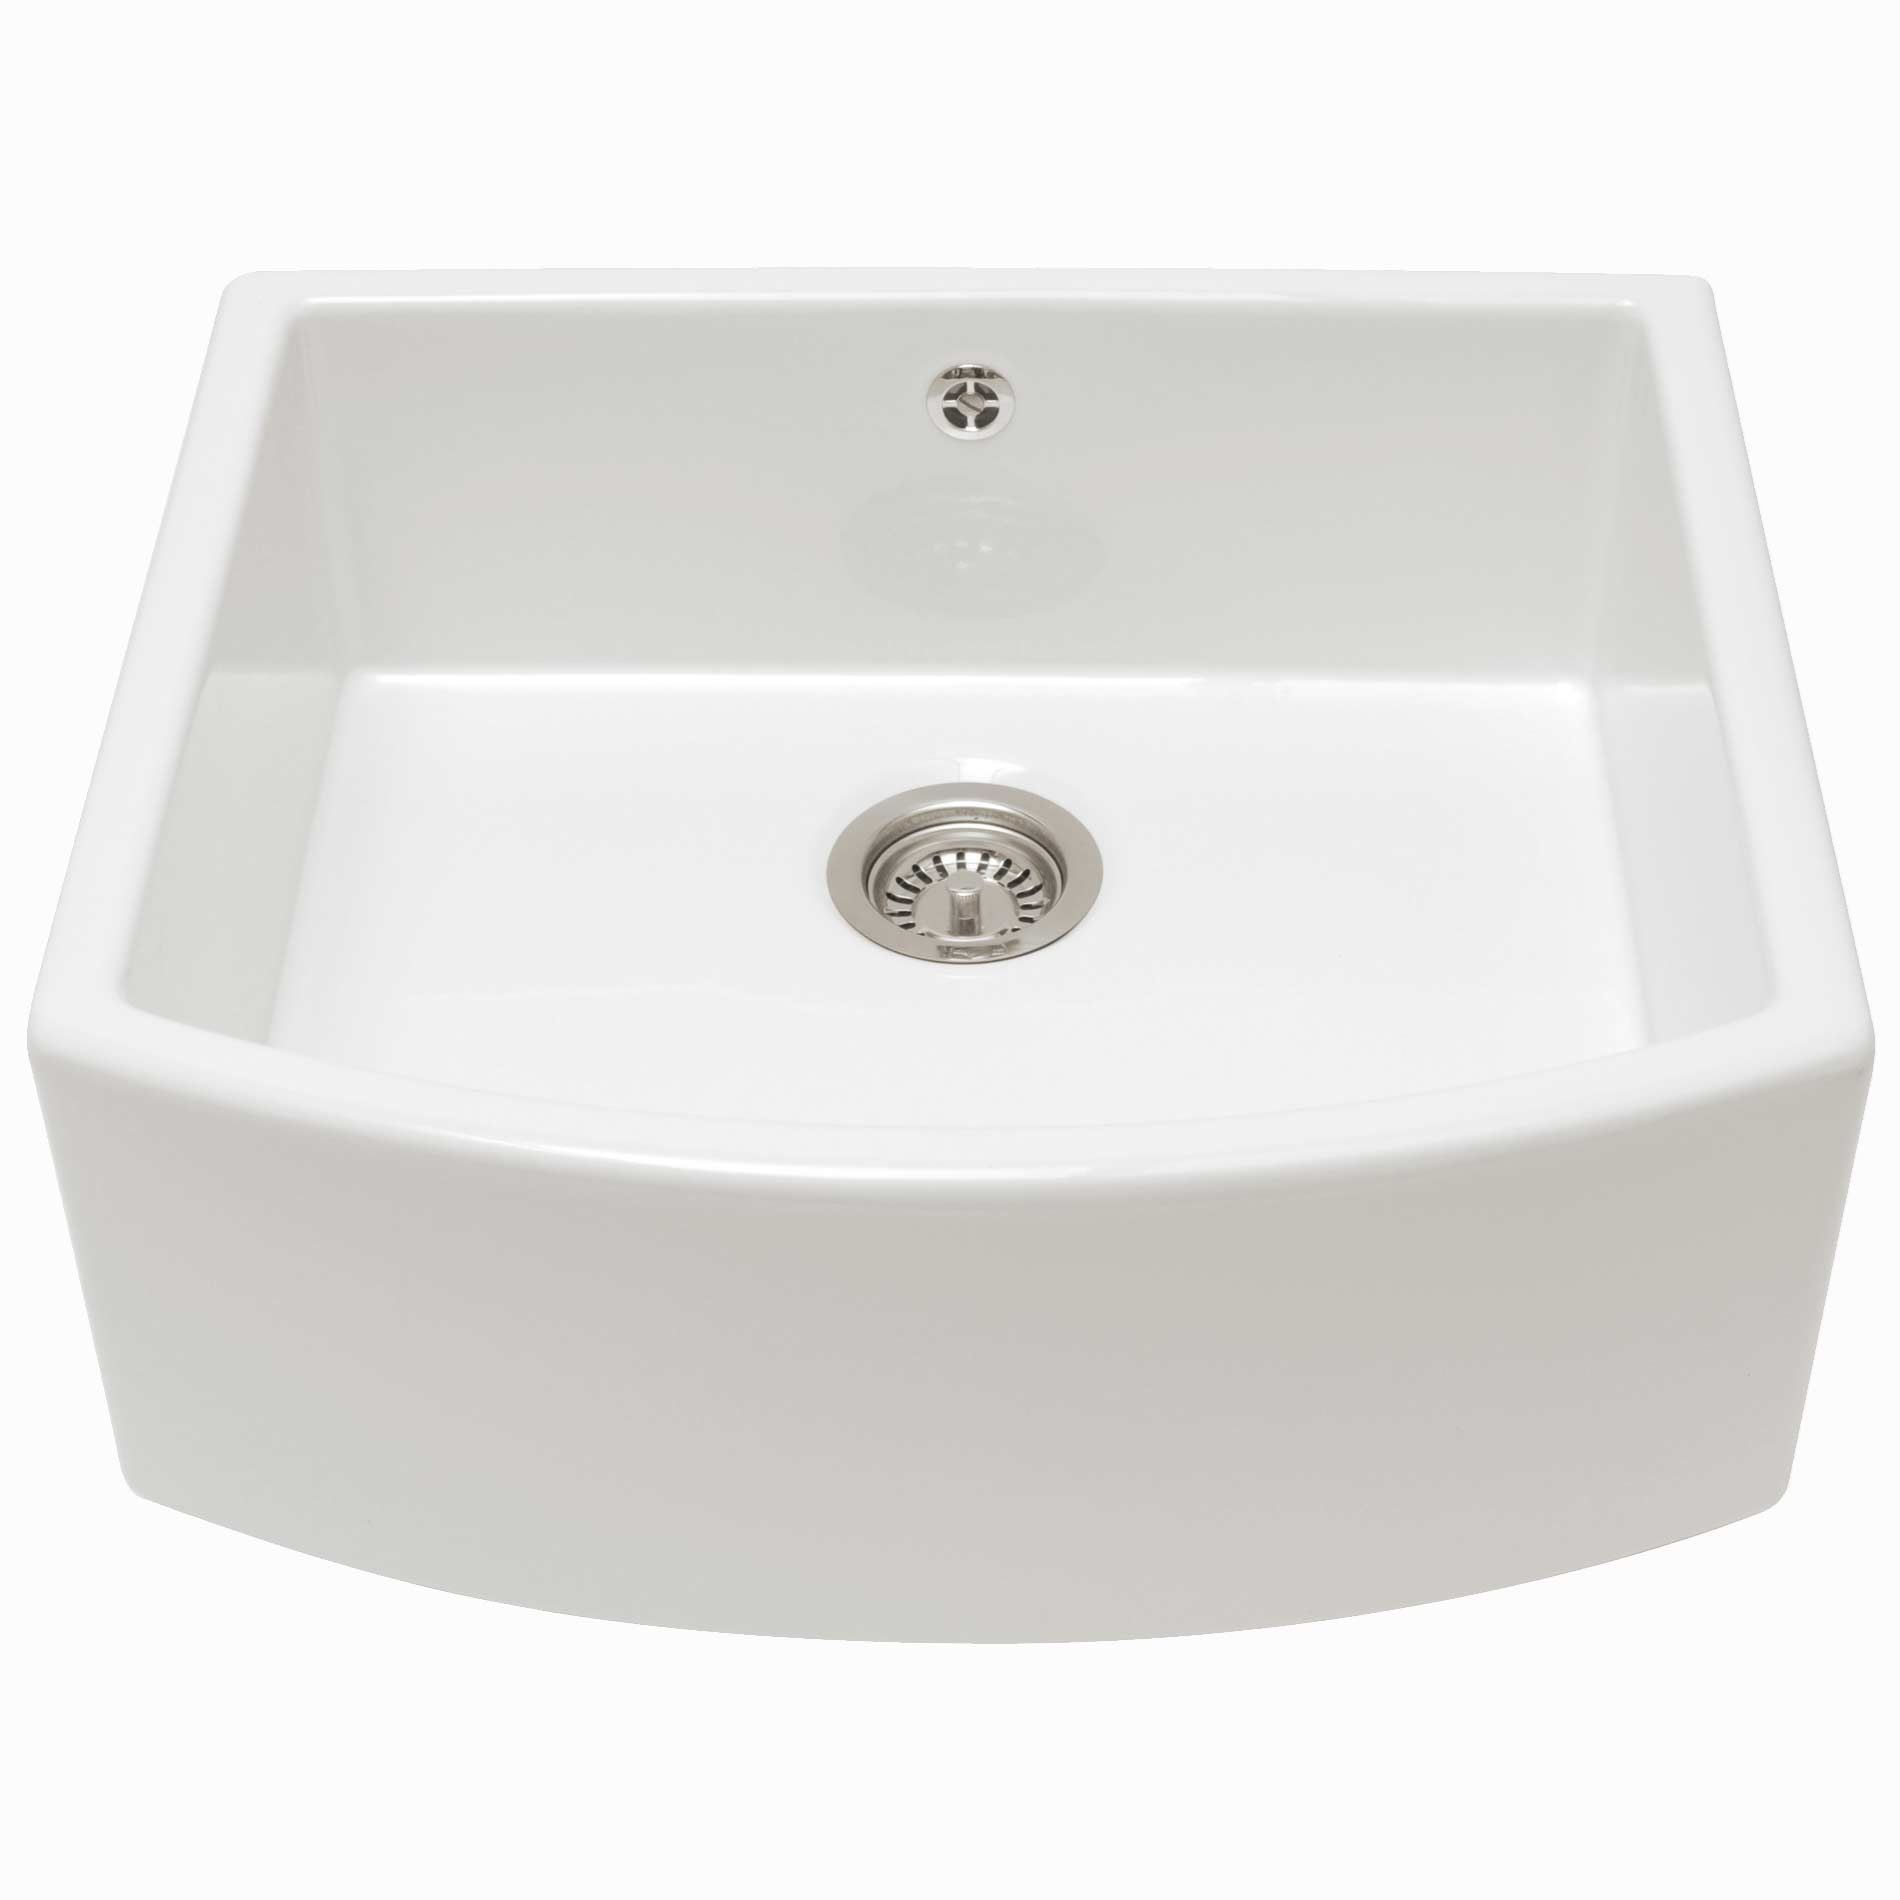 Caple Pemberley Ceramic Single Bowl Sink Kitchen Sinks